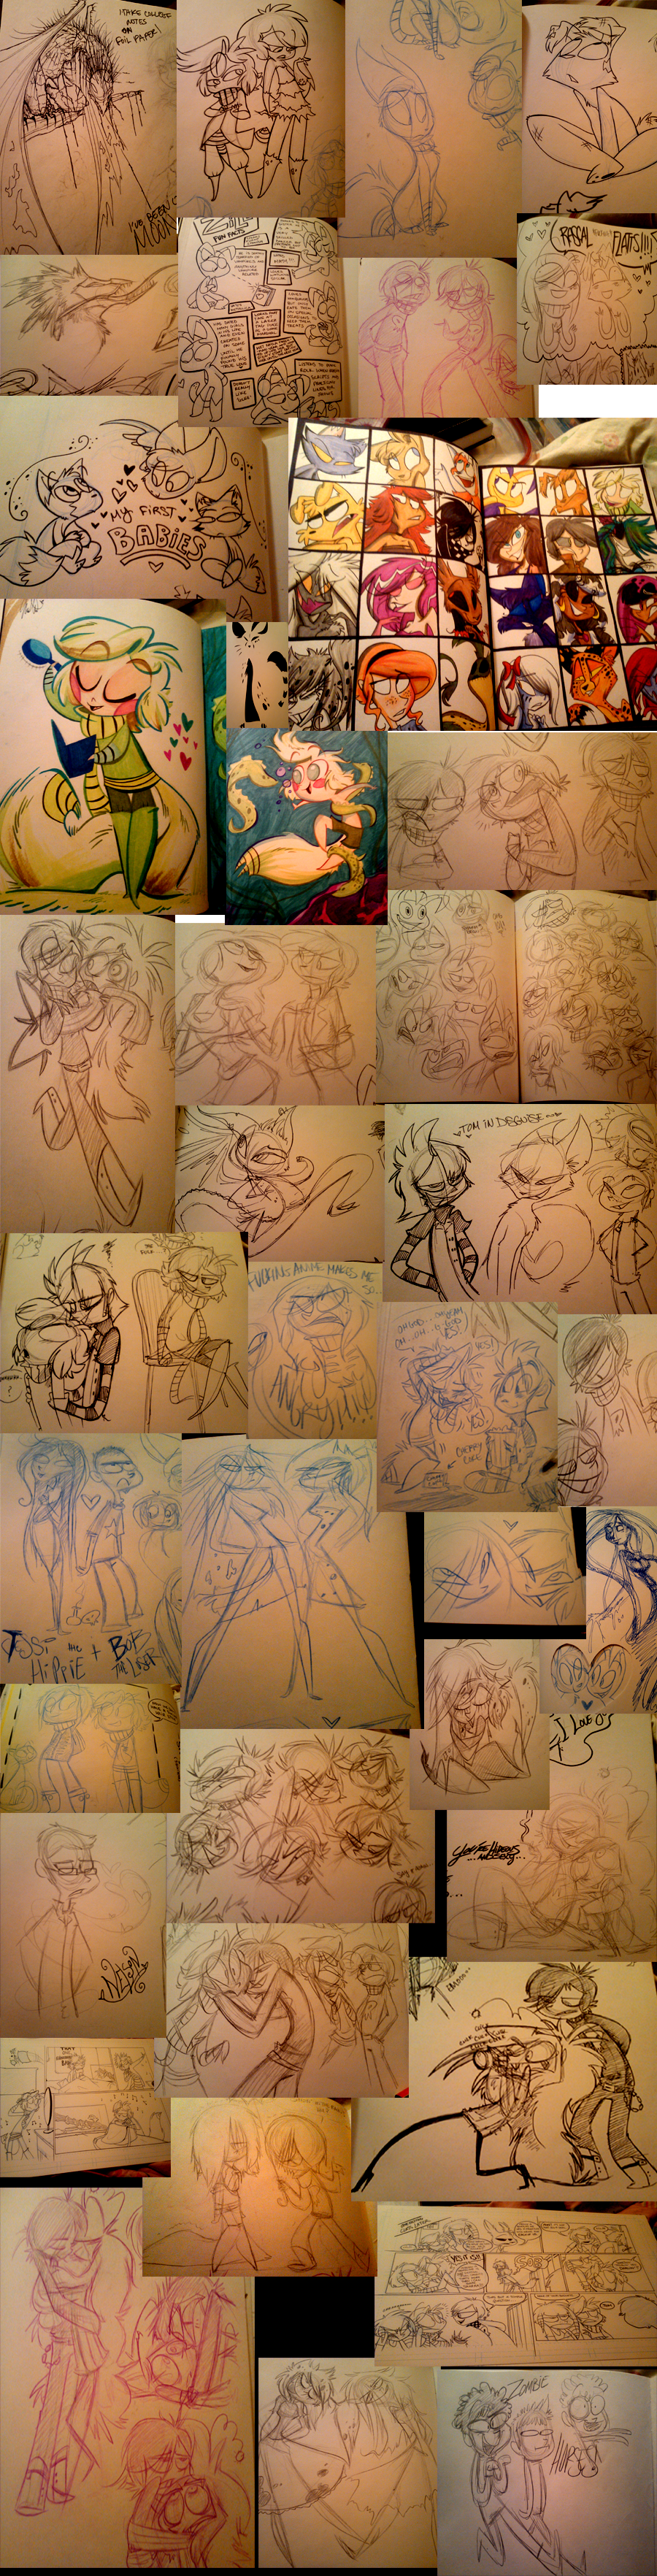 5th Sketchbook sketchdump by VivzMind